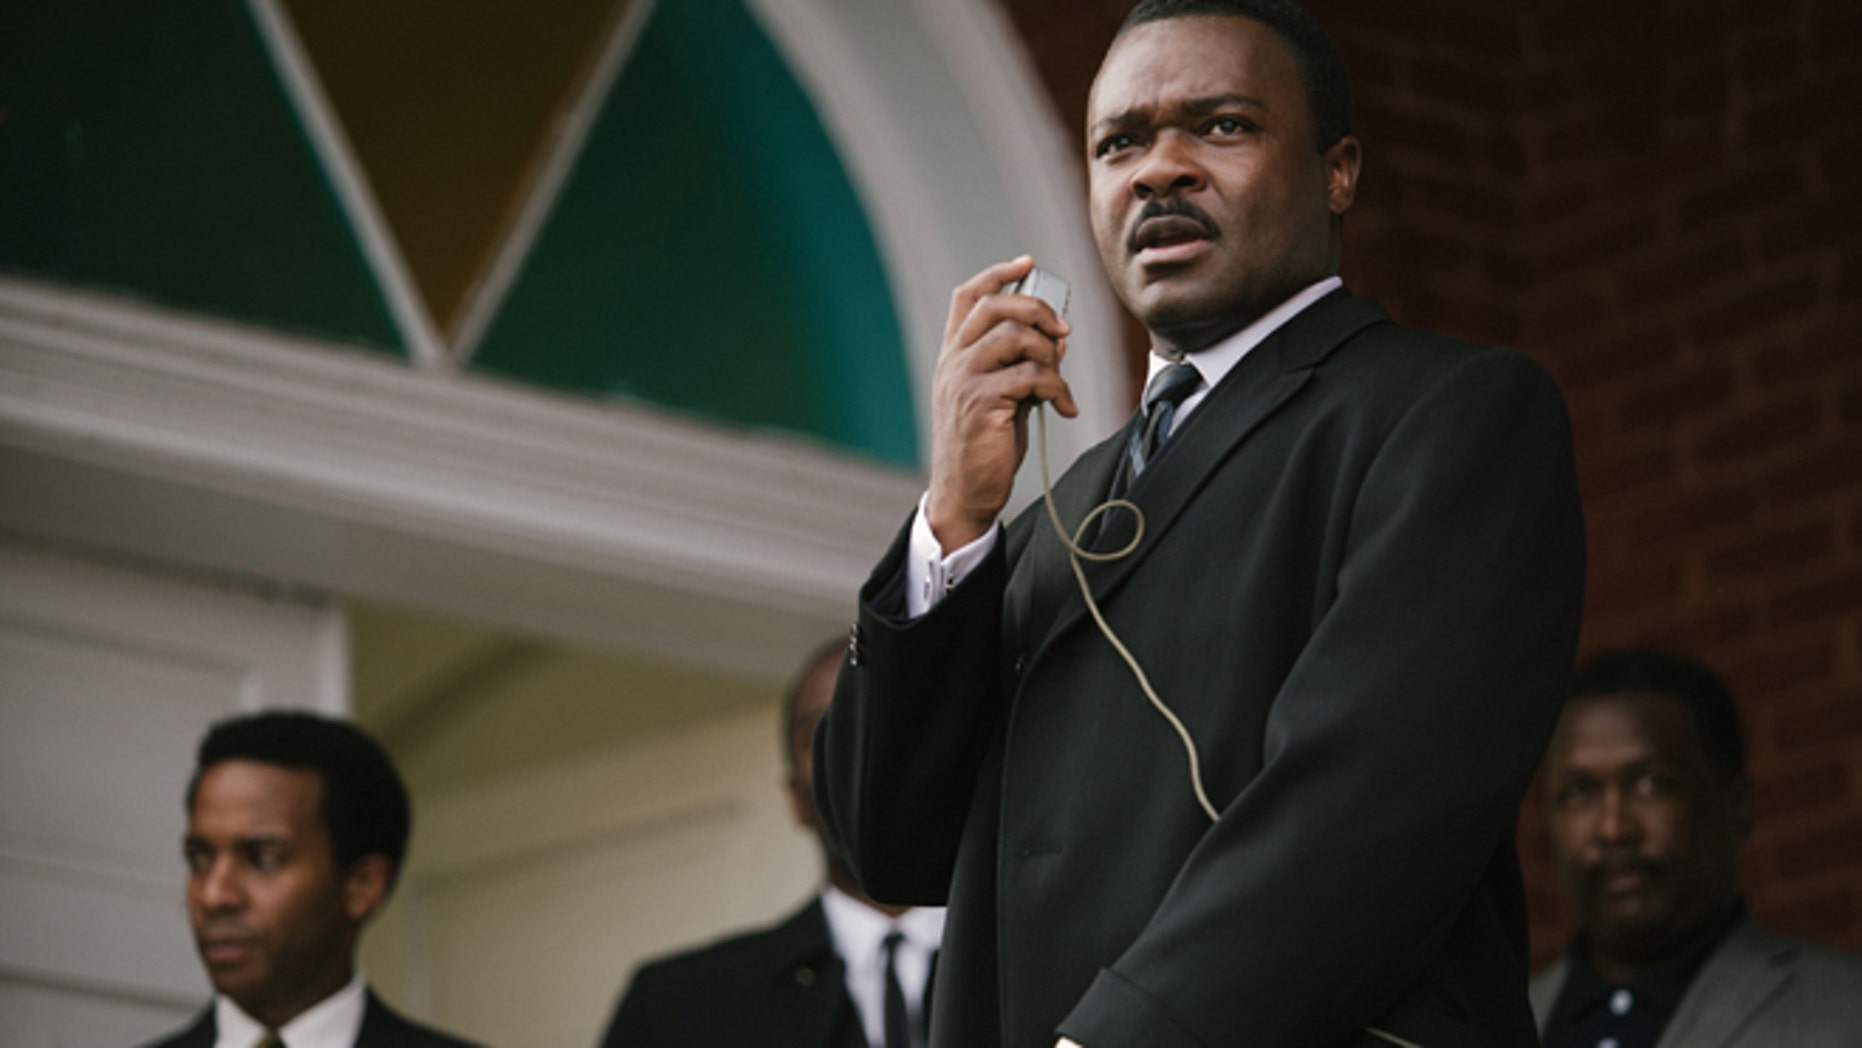 """In this image released by Paramount Pictures, David Oyelowo portrays Dr. Martin Luther King, Jr. in a scene from """"Selma,"""" a film based on the slain civil rights leader."""